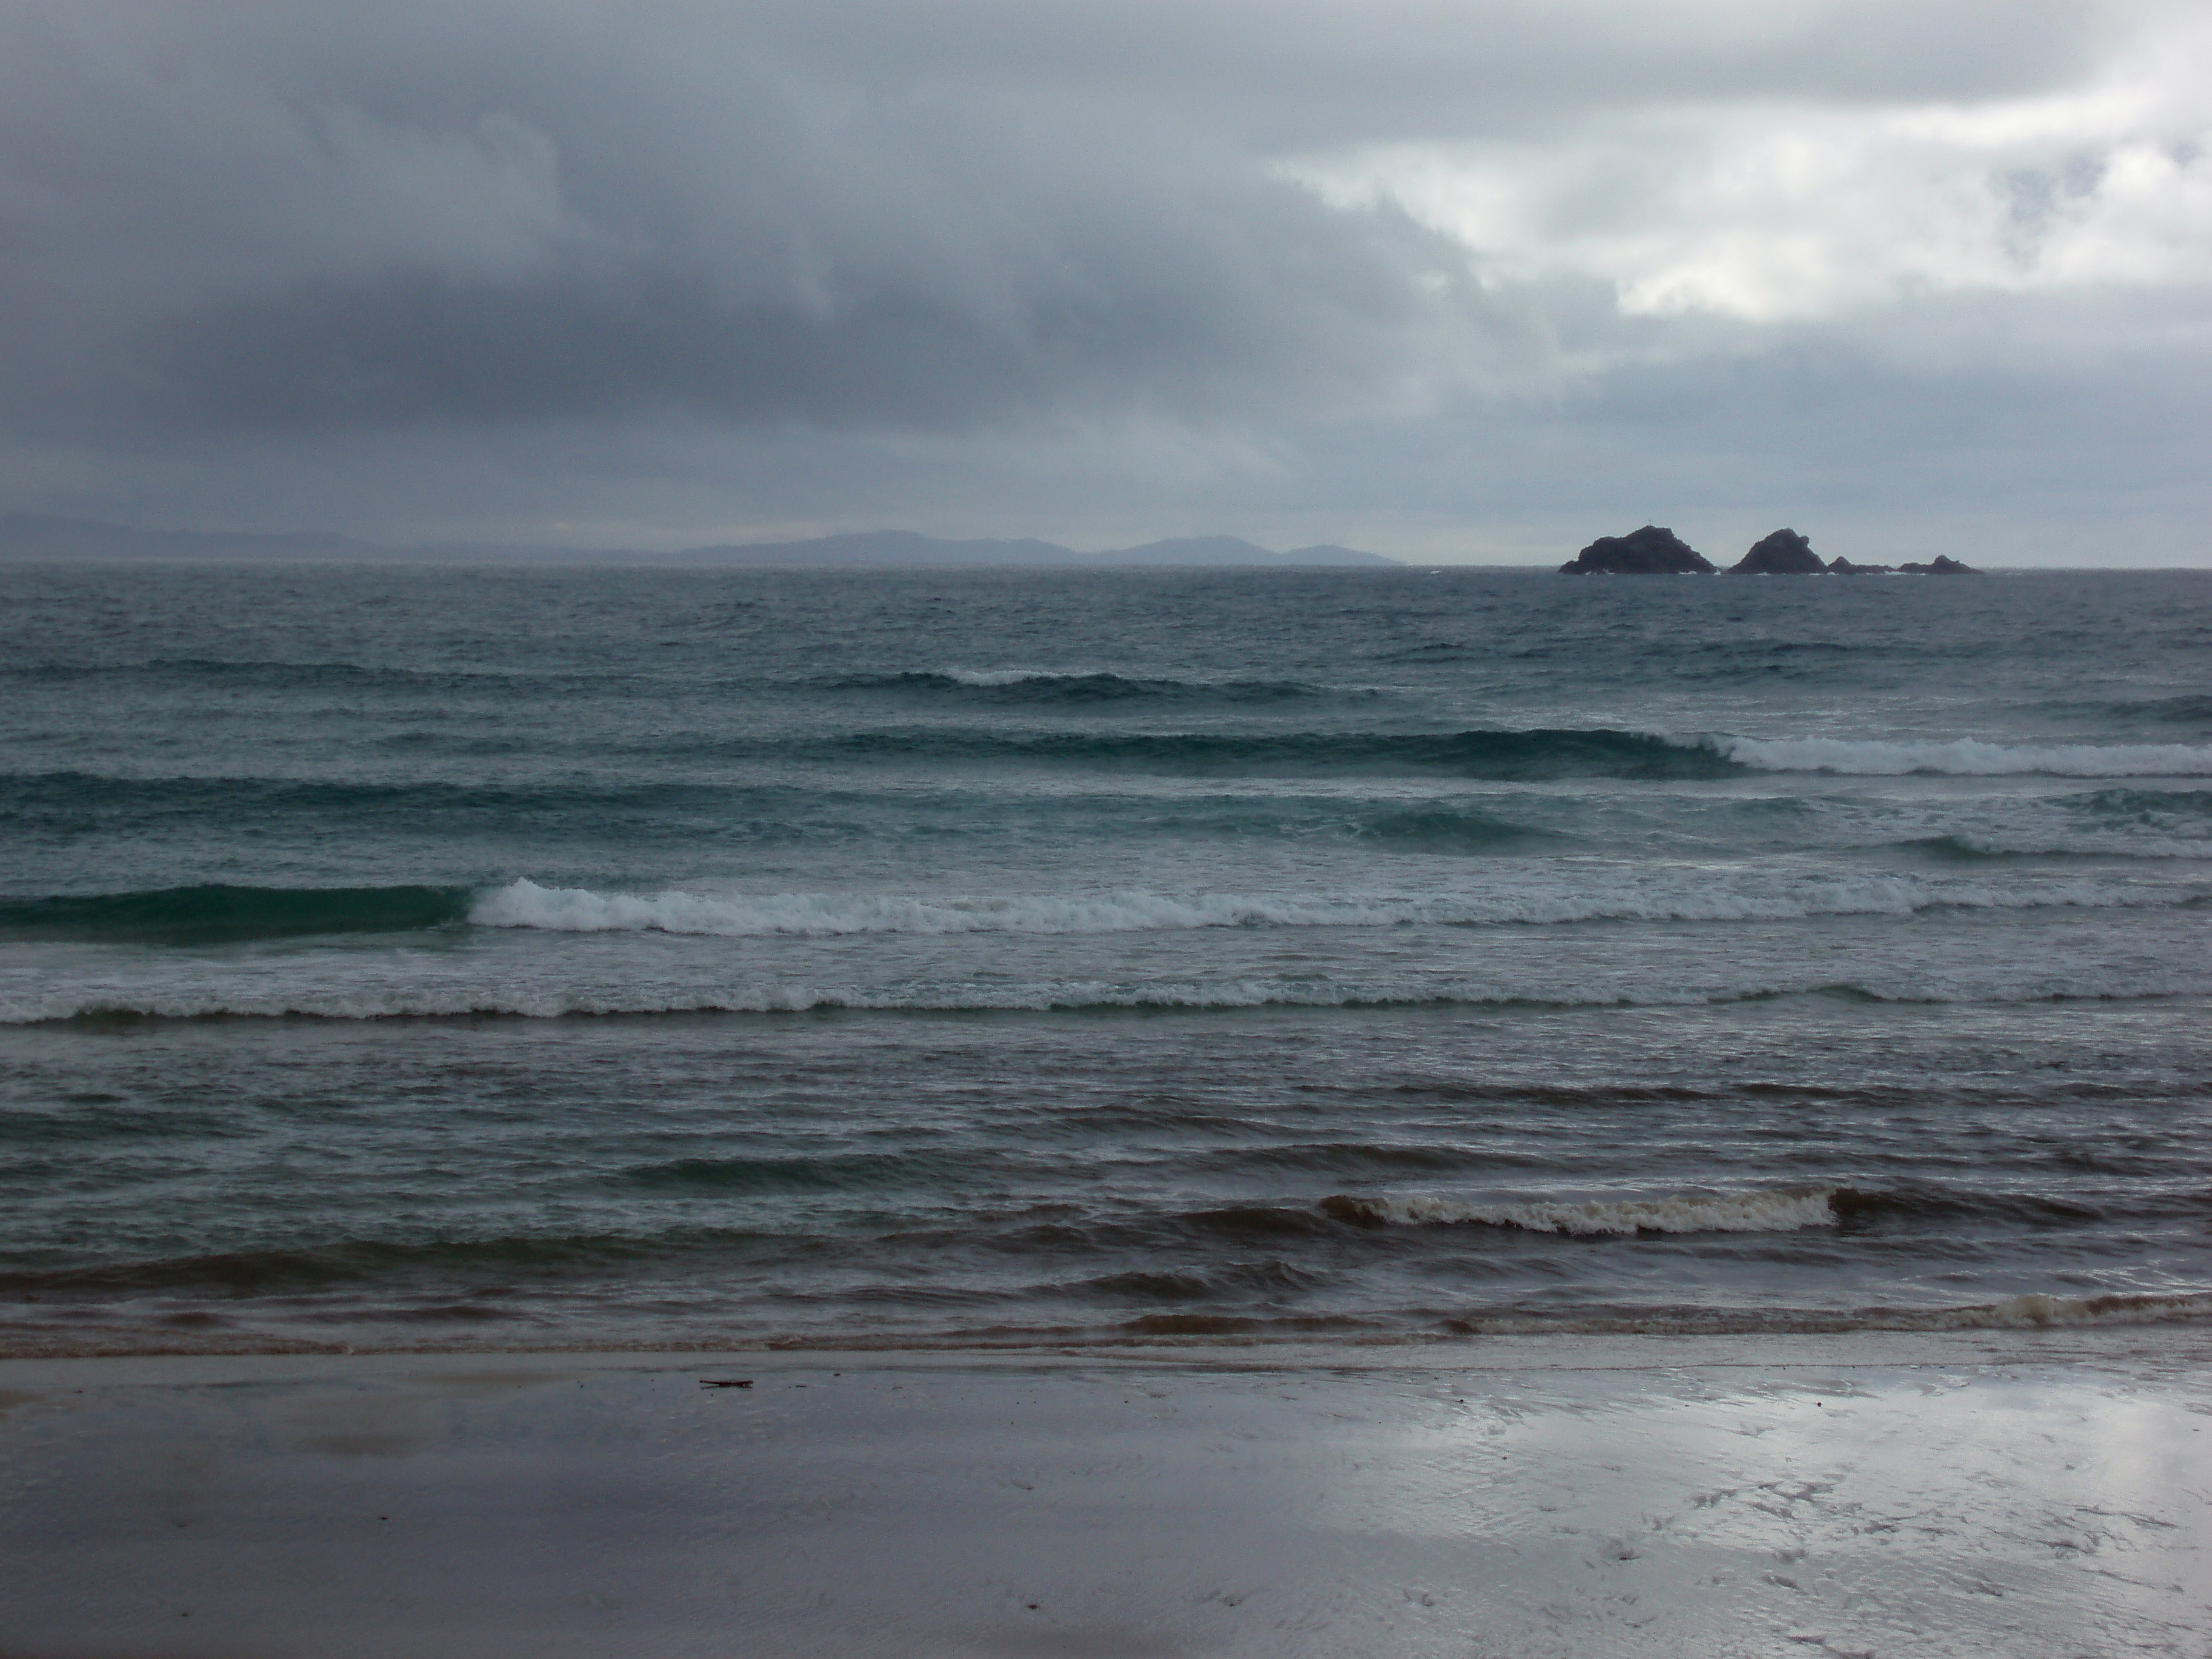 waves breaking on the beach on a grey stormy day